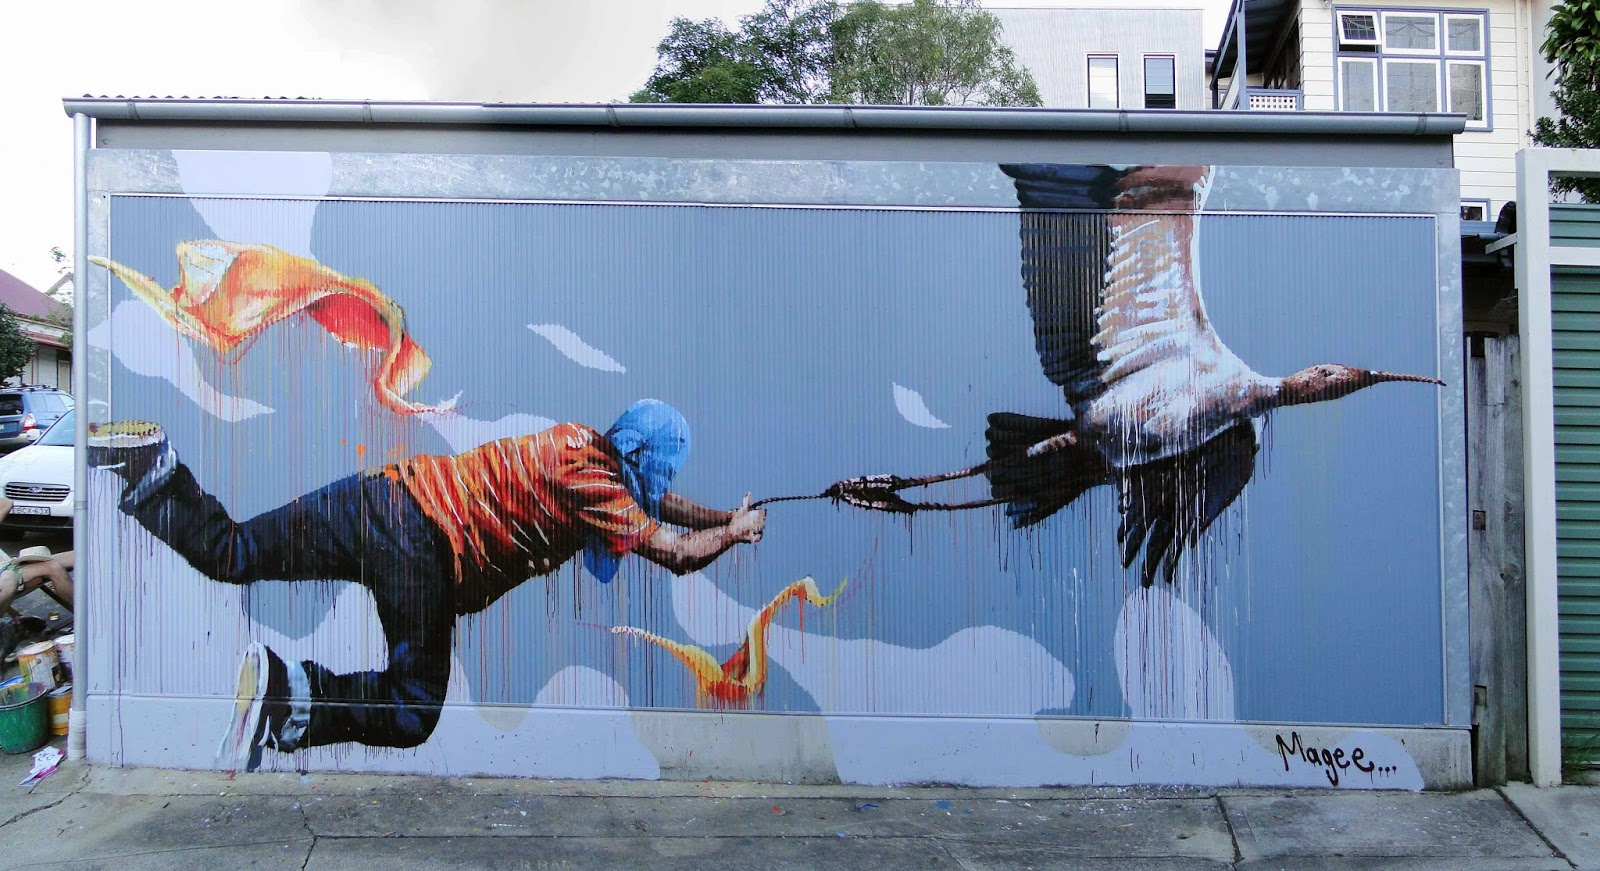 Fintan Magee is still travelling around Australia where he just wrapped up this dope new piece on the streets of Leichardt, Sydney. 1